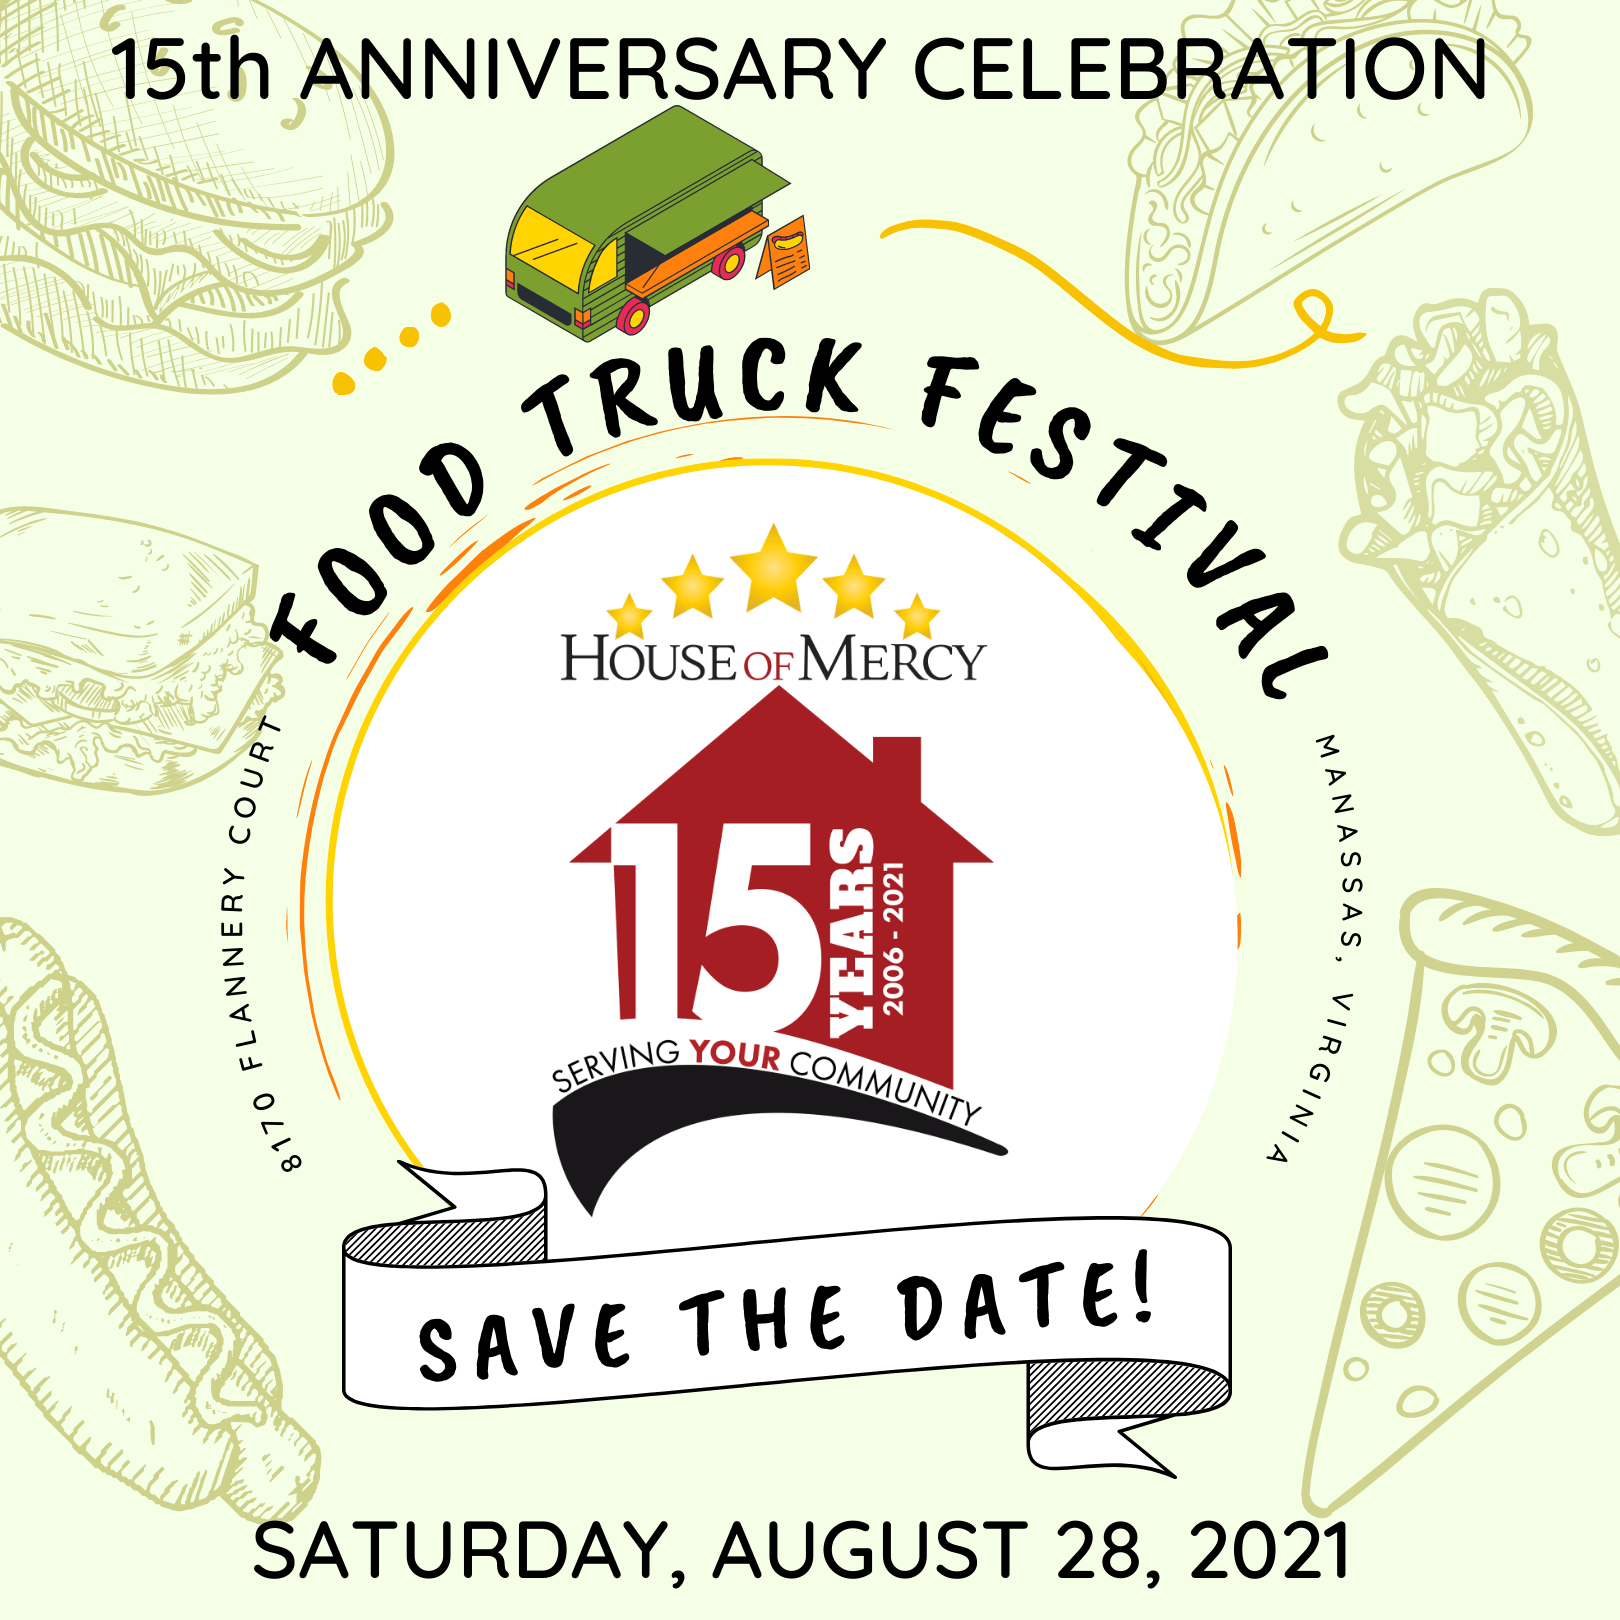 SAVE THE DATE! 15th Anniversary Food Truck Festival